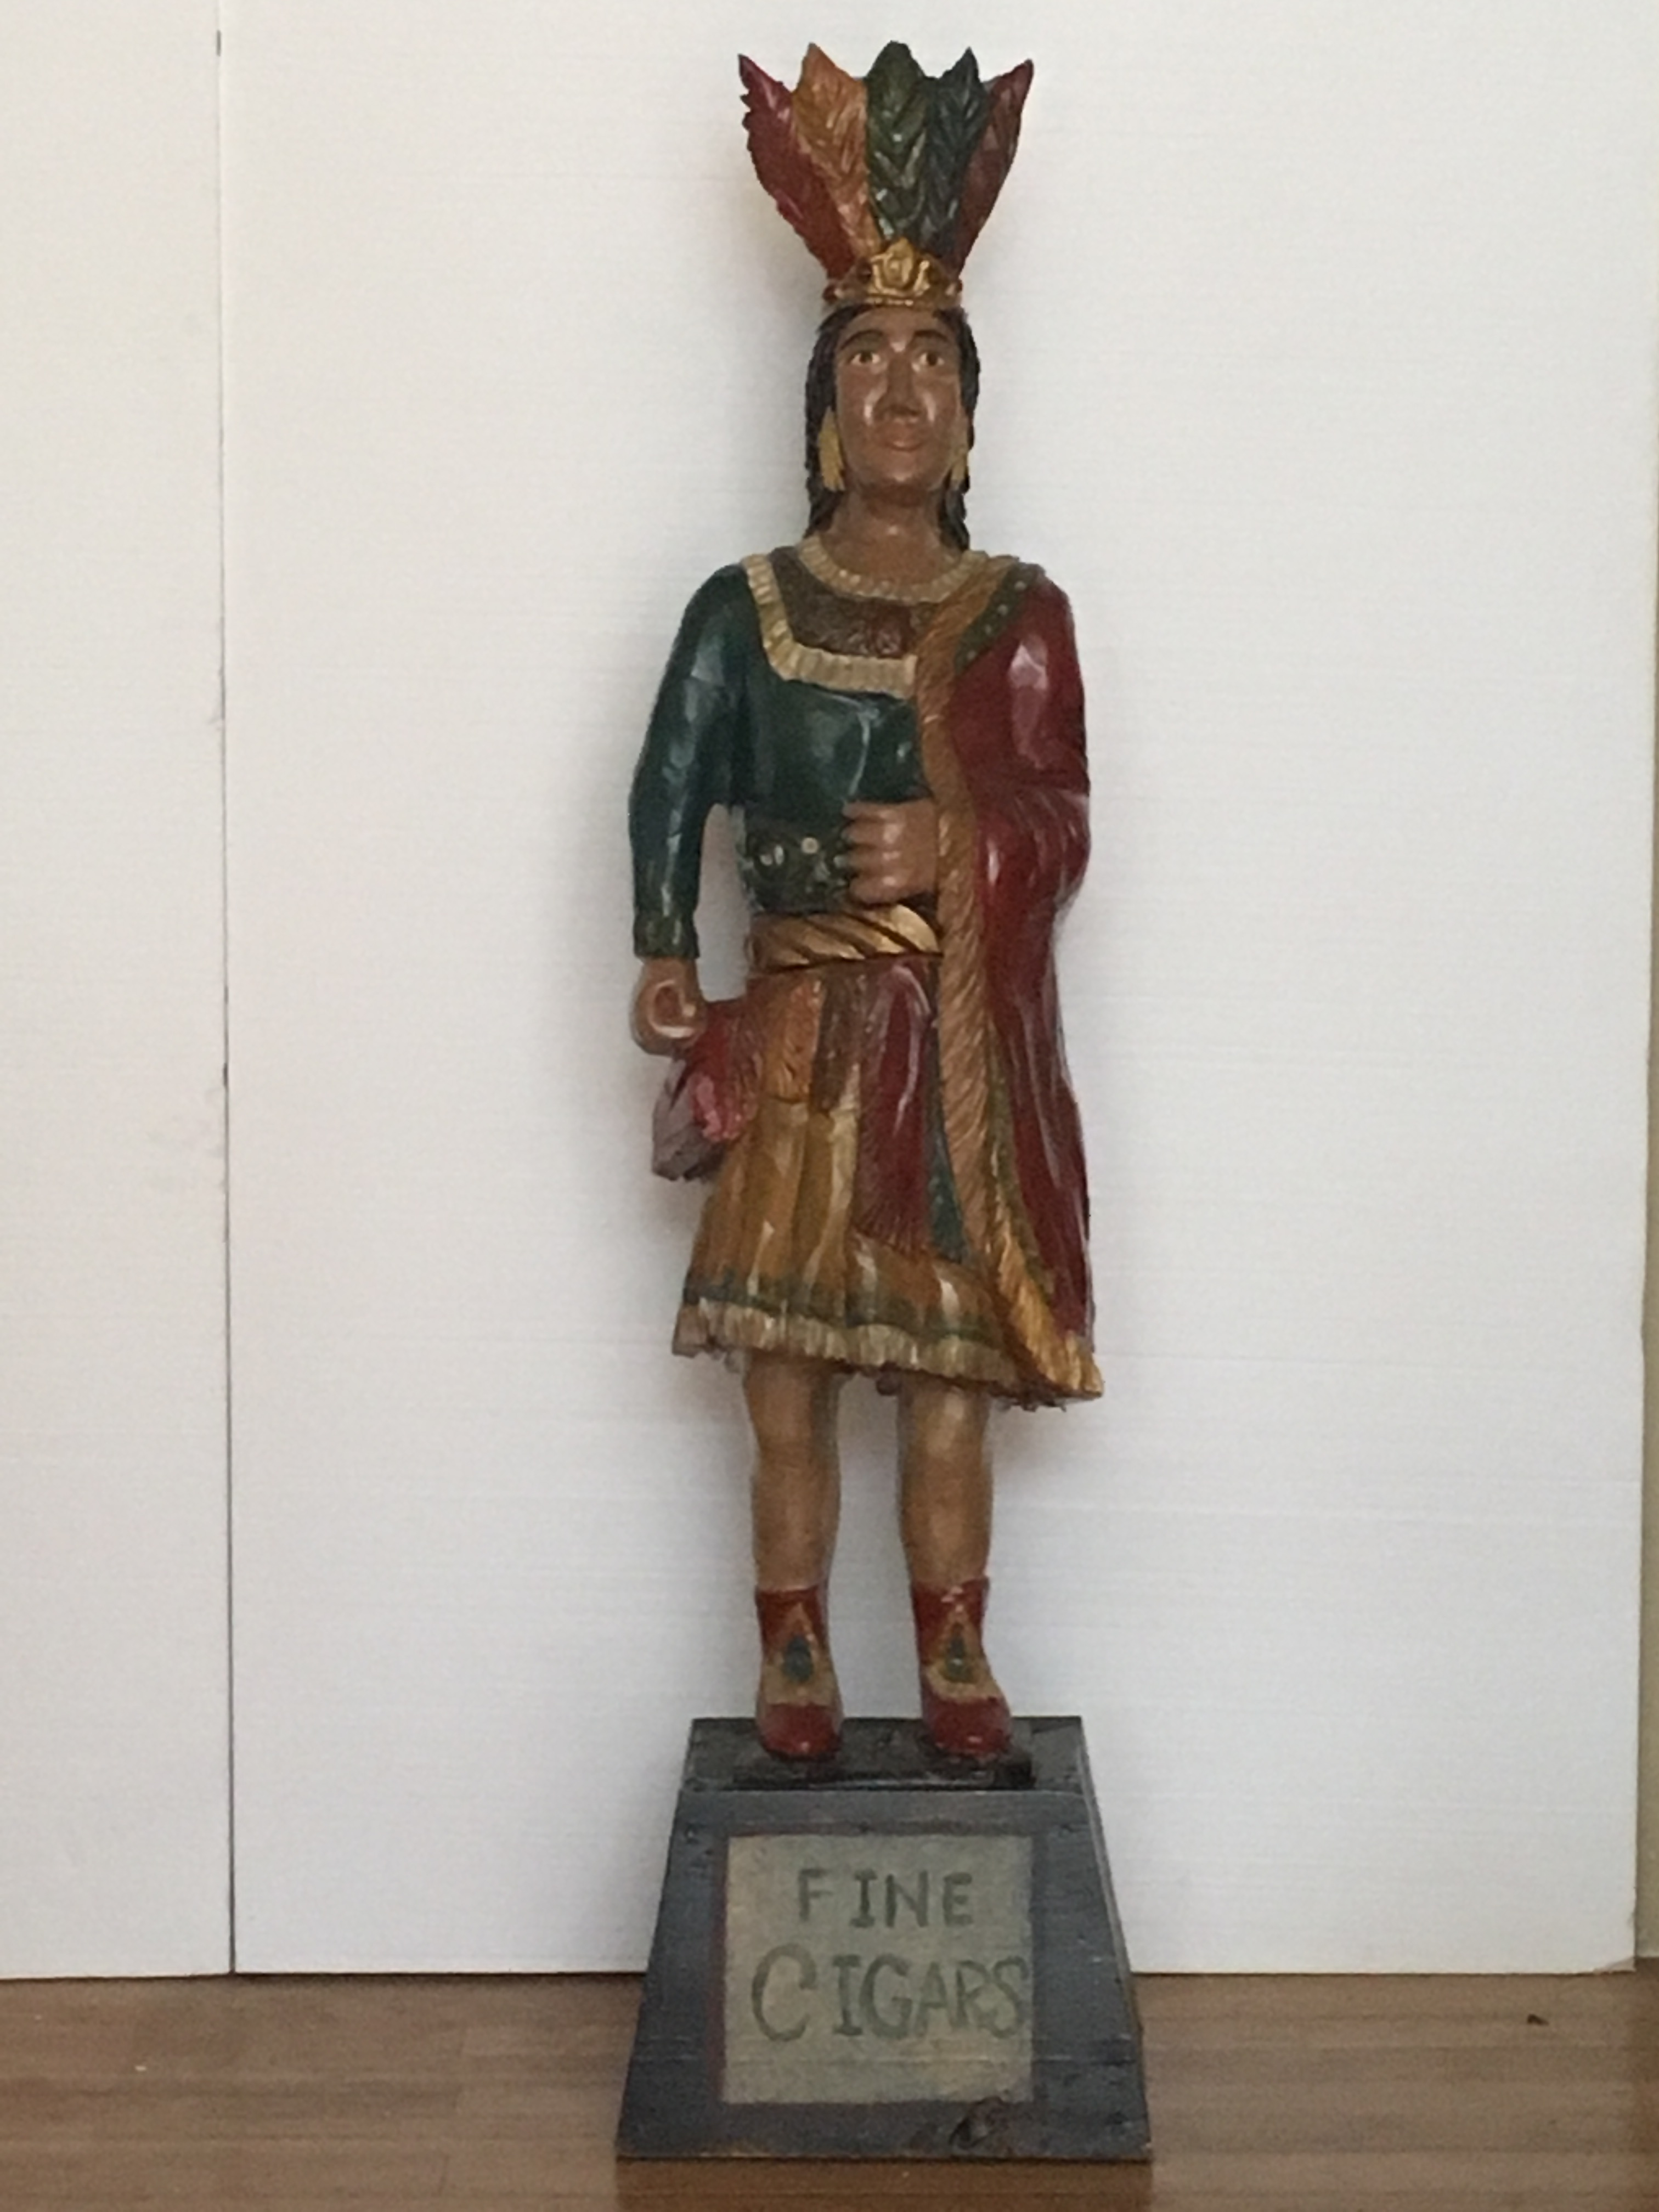 Wood Cigar Store Indian Statues And Figures With History And Origin